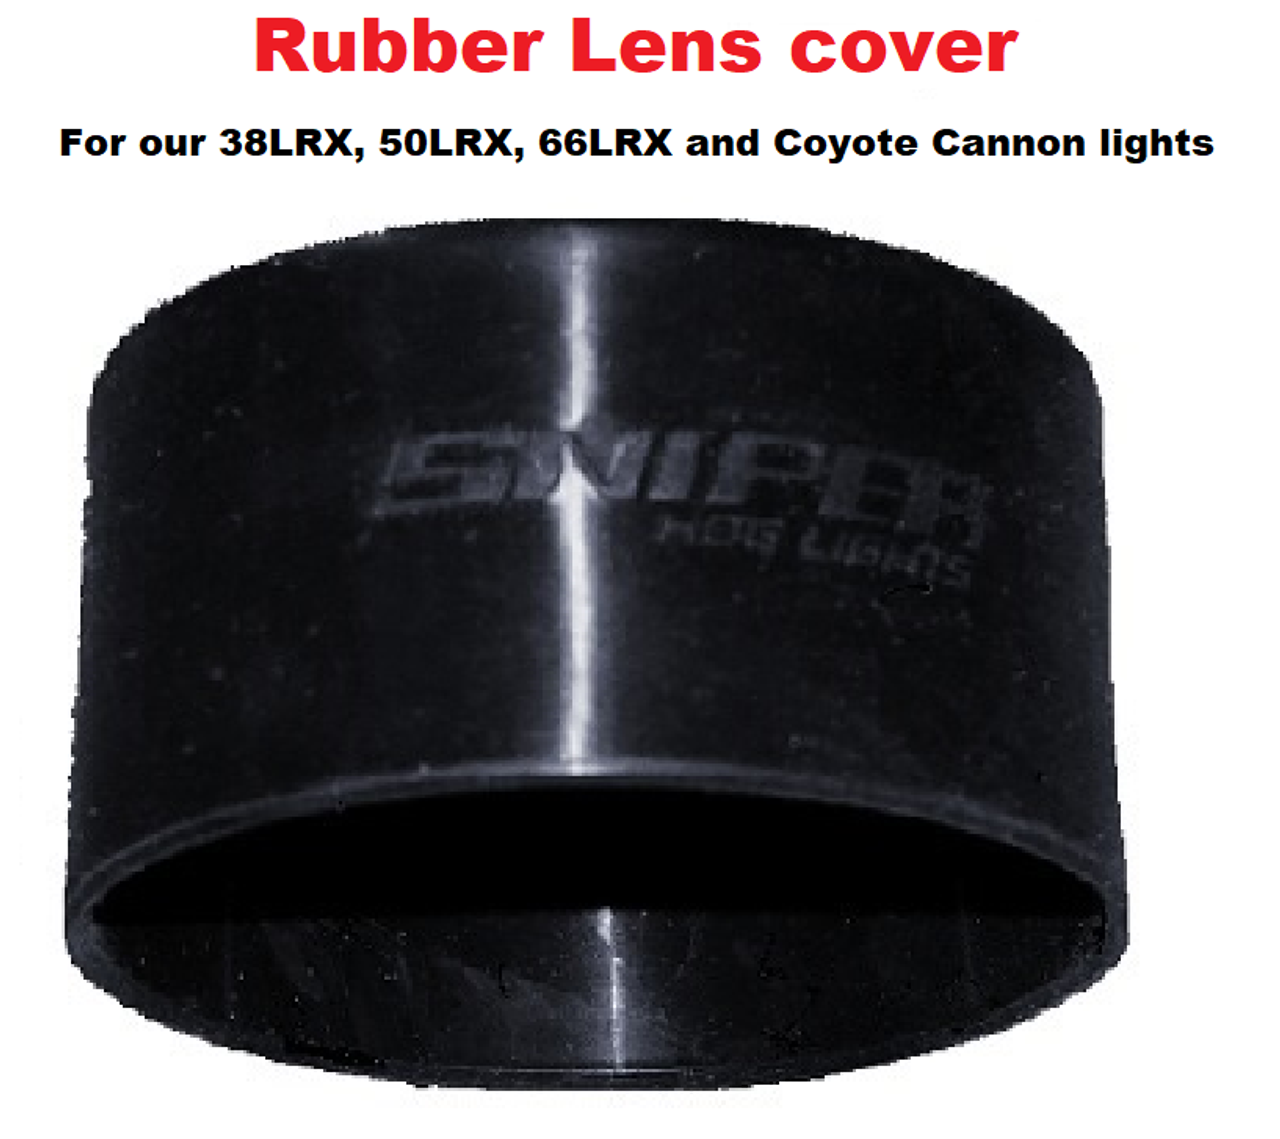 Rubber Lens covers